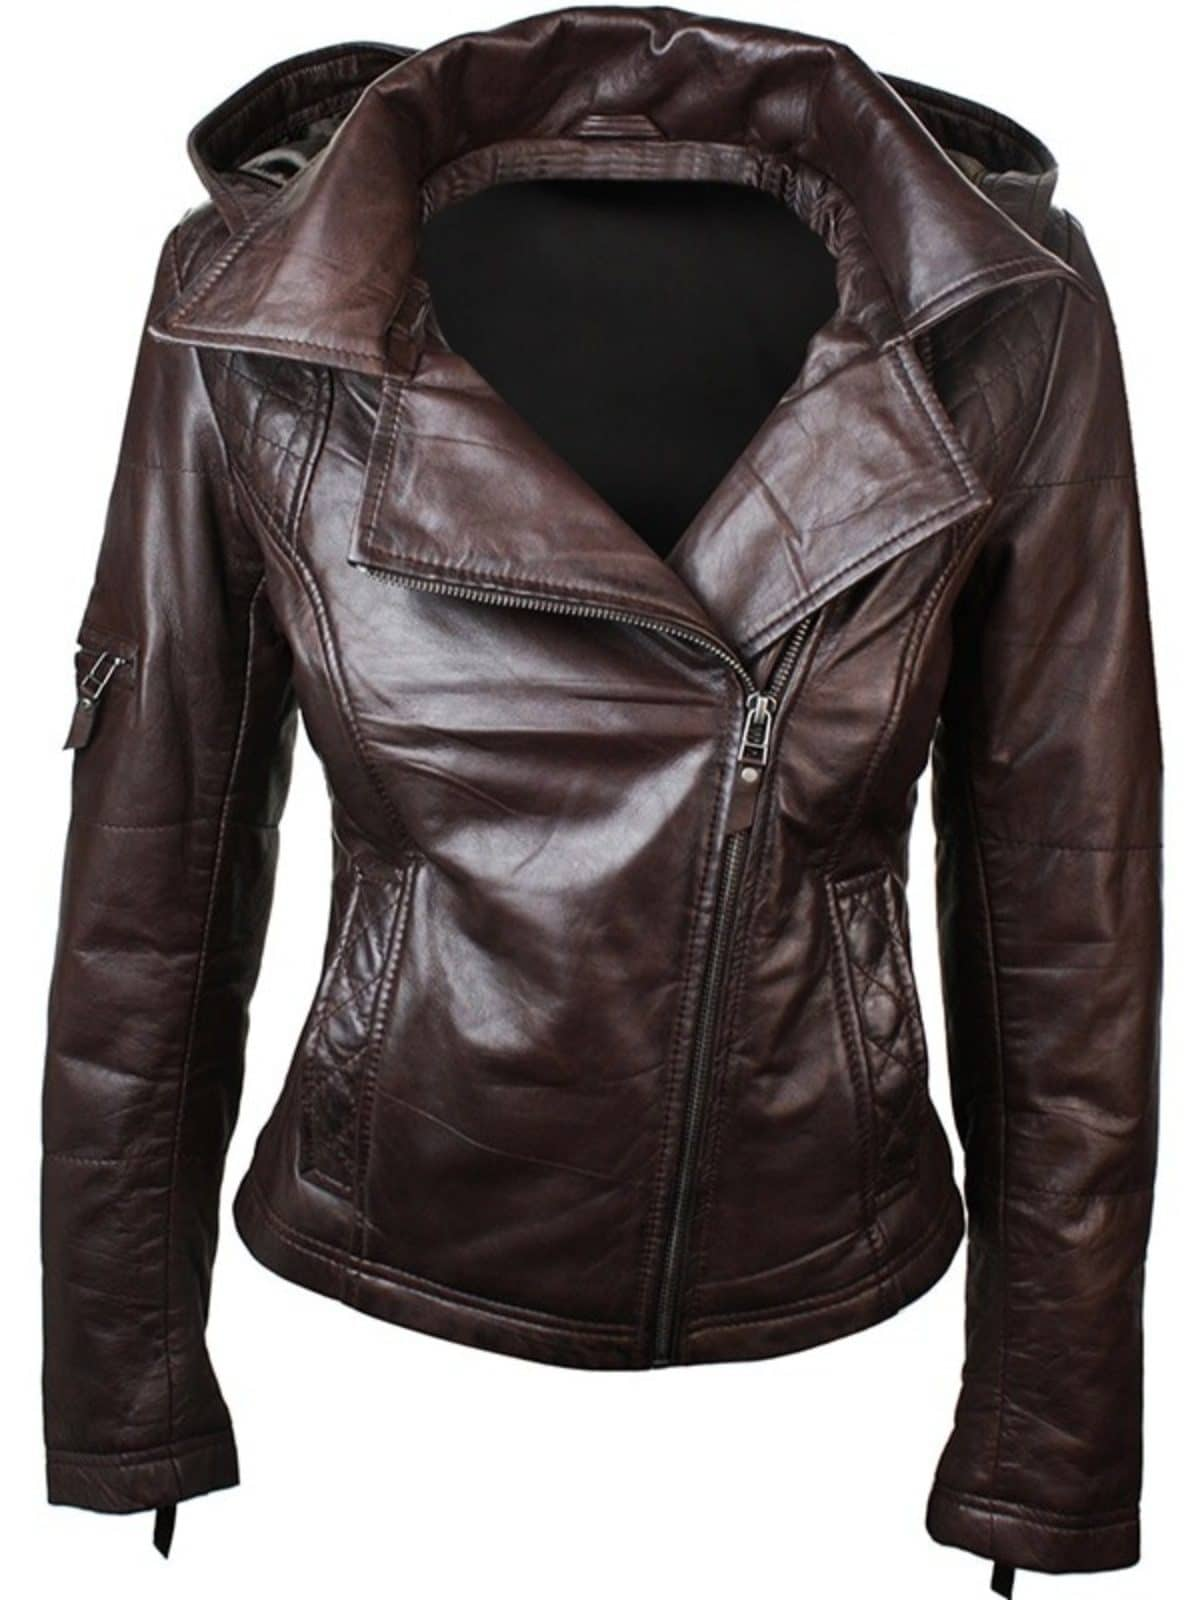 Womens Slim Fit Leather Jacket with Hood Chocolate Brown 1